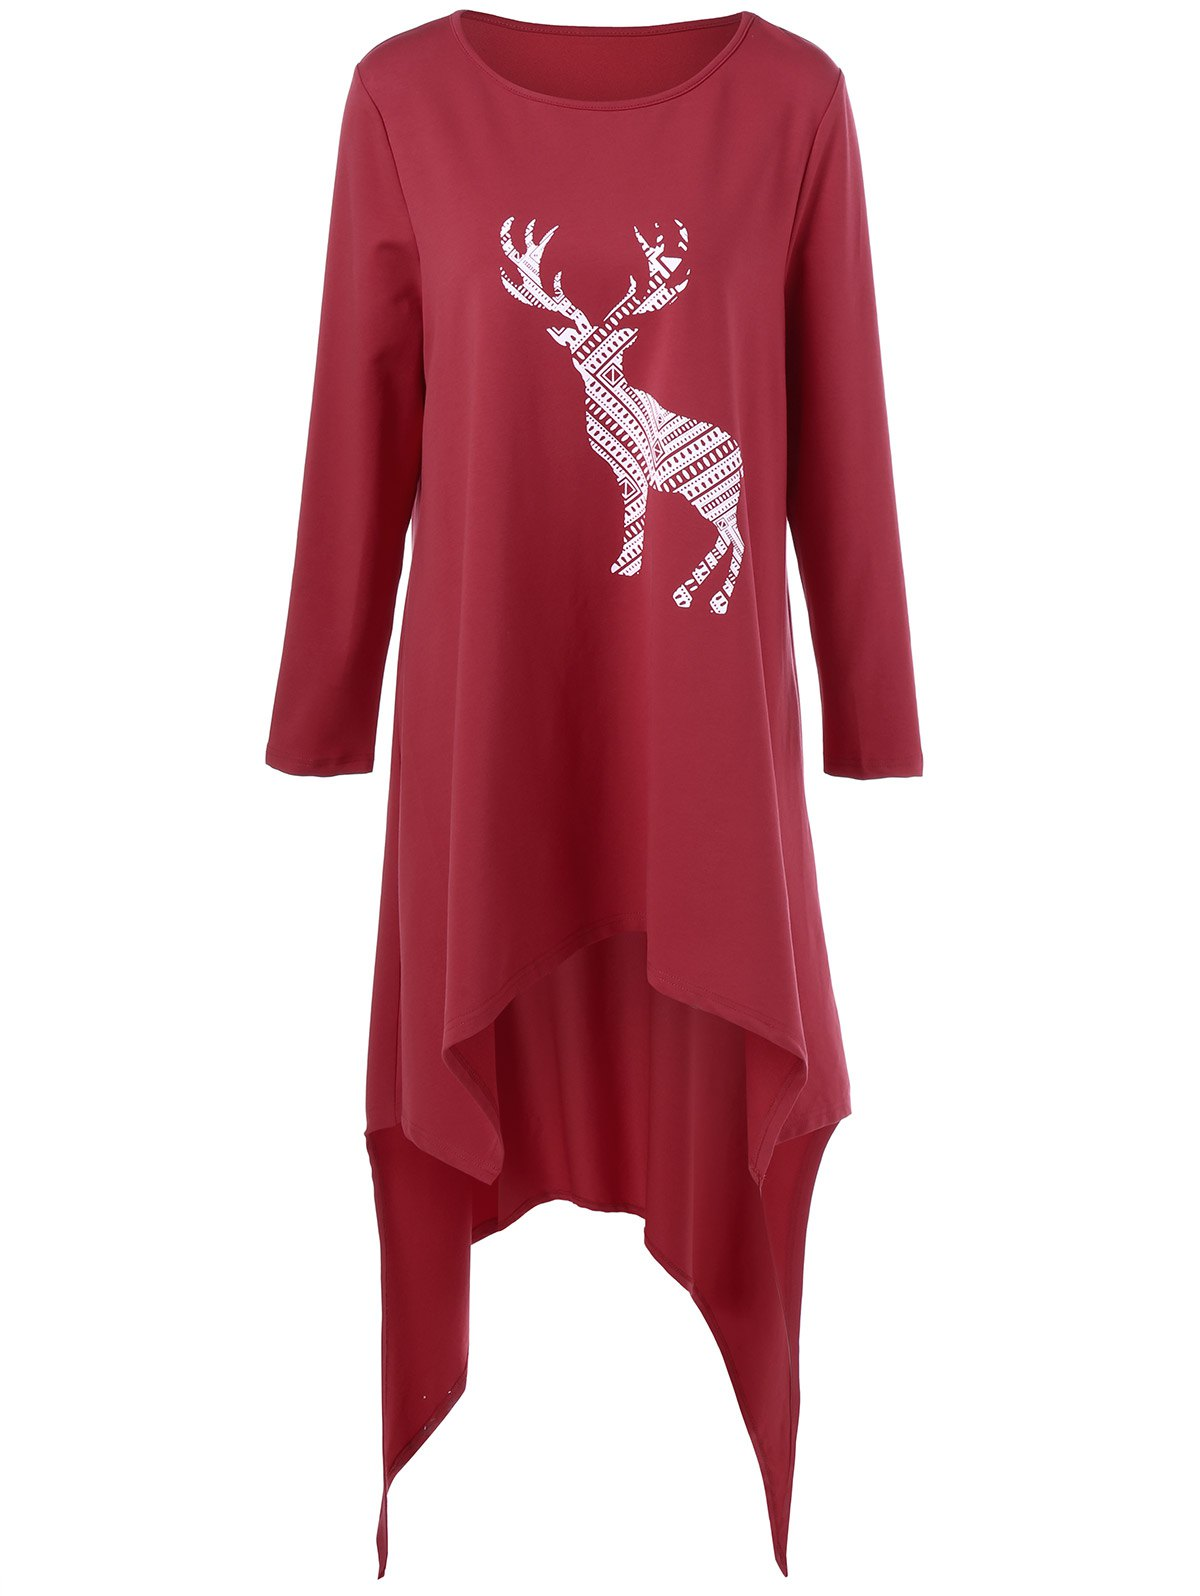 Fashion Deer Print Plus Size Asymmetric T-Shirt